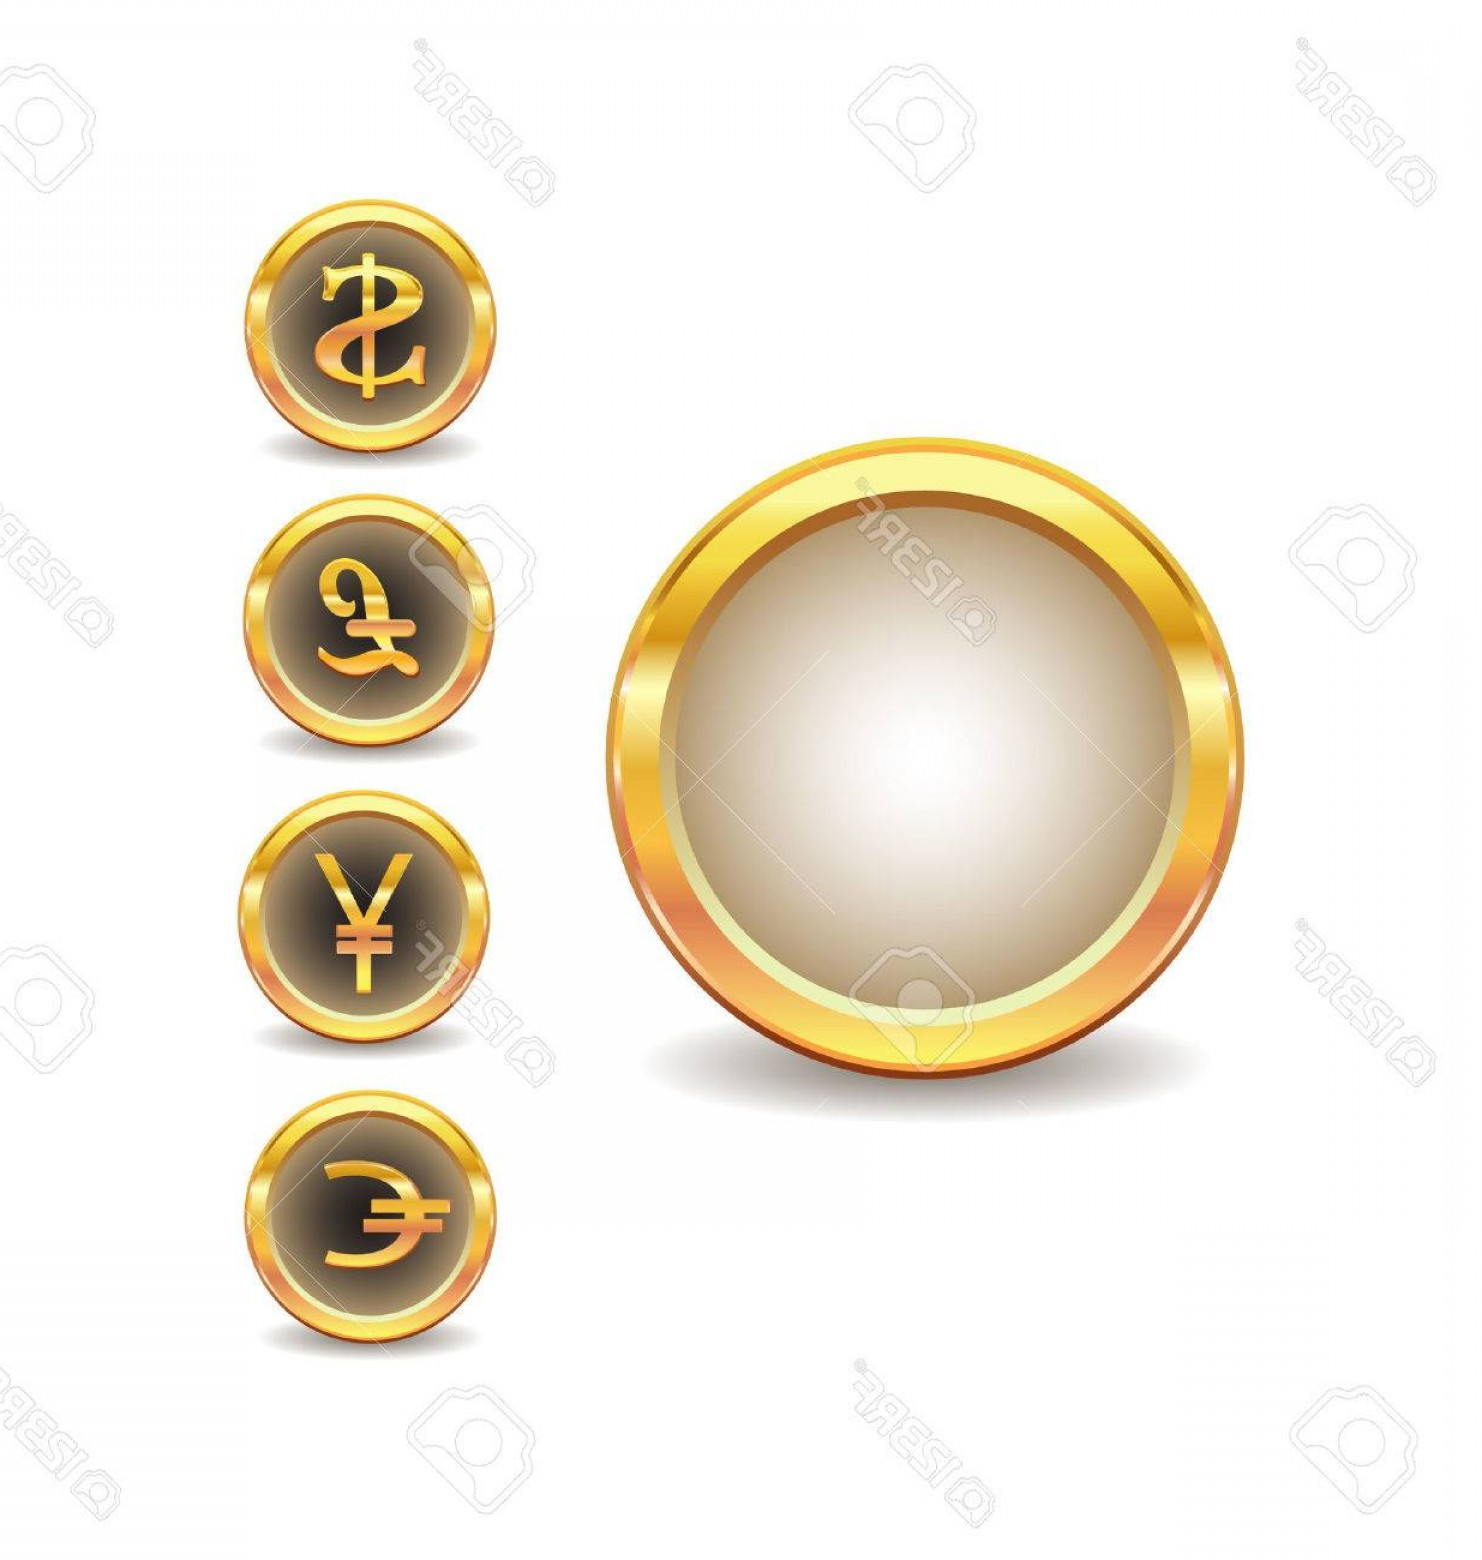 Gold Button Vector: Photogolden Buttons With Words Currency Icons